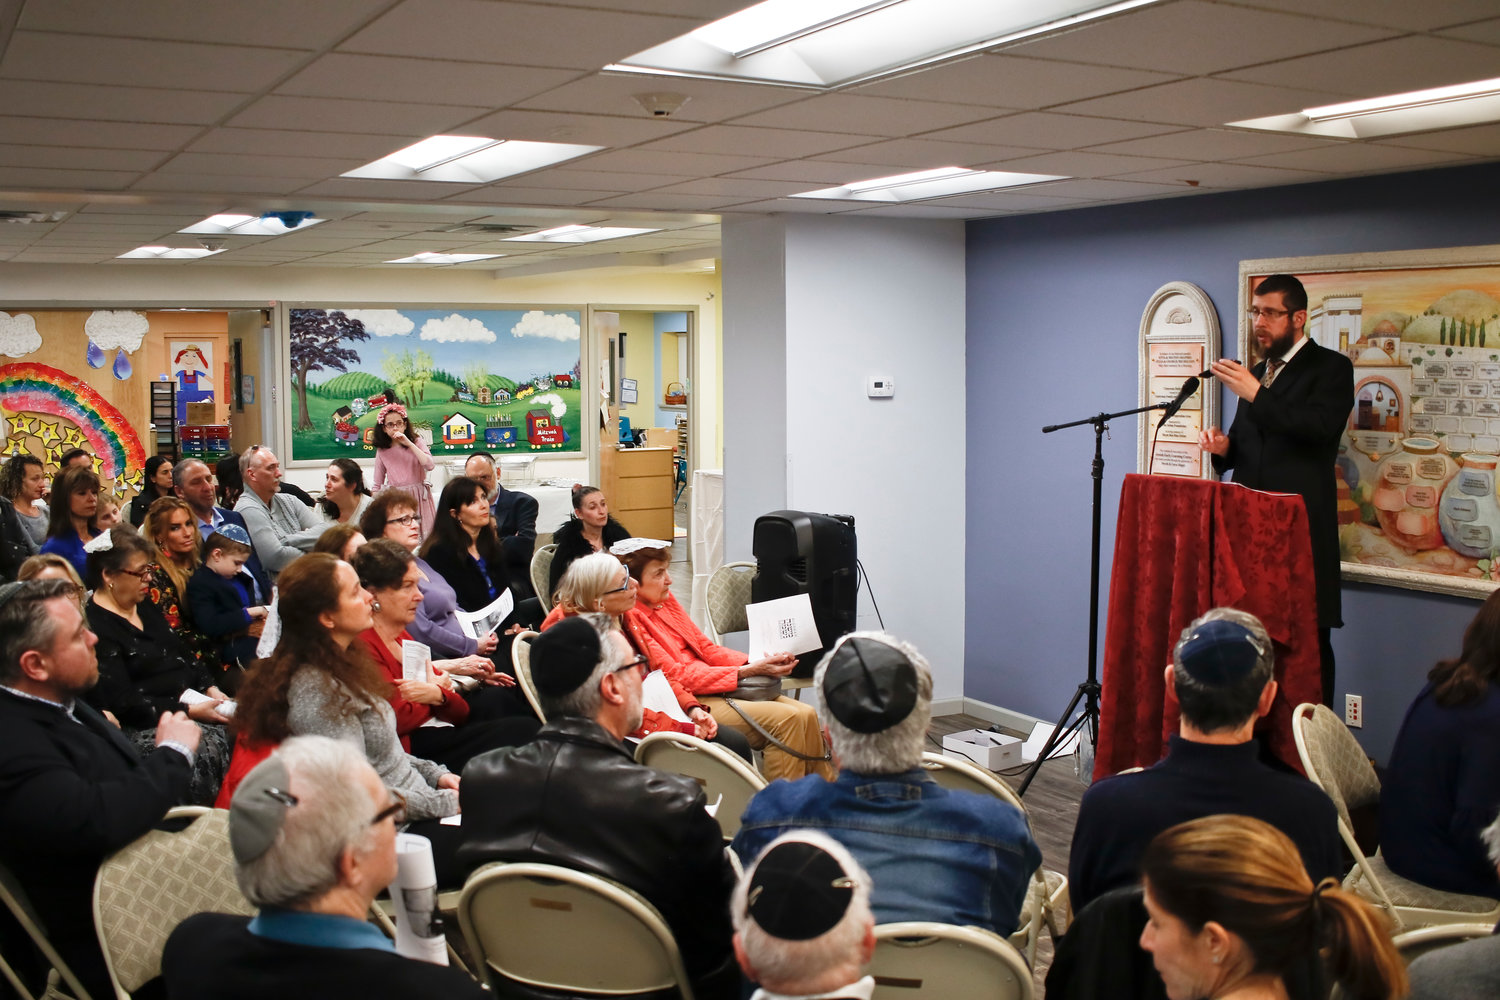 On May 3, the Chabad Center for Jewish Life hosted a candle-lighting ceremony in honor of Lori Kaye.